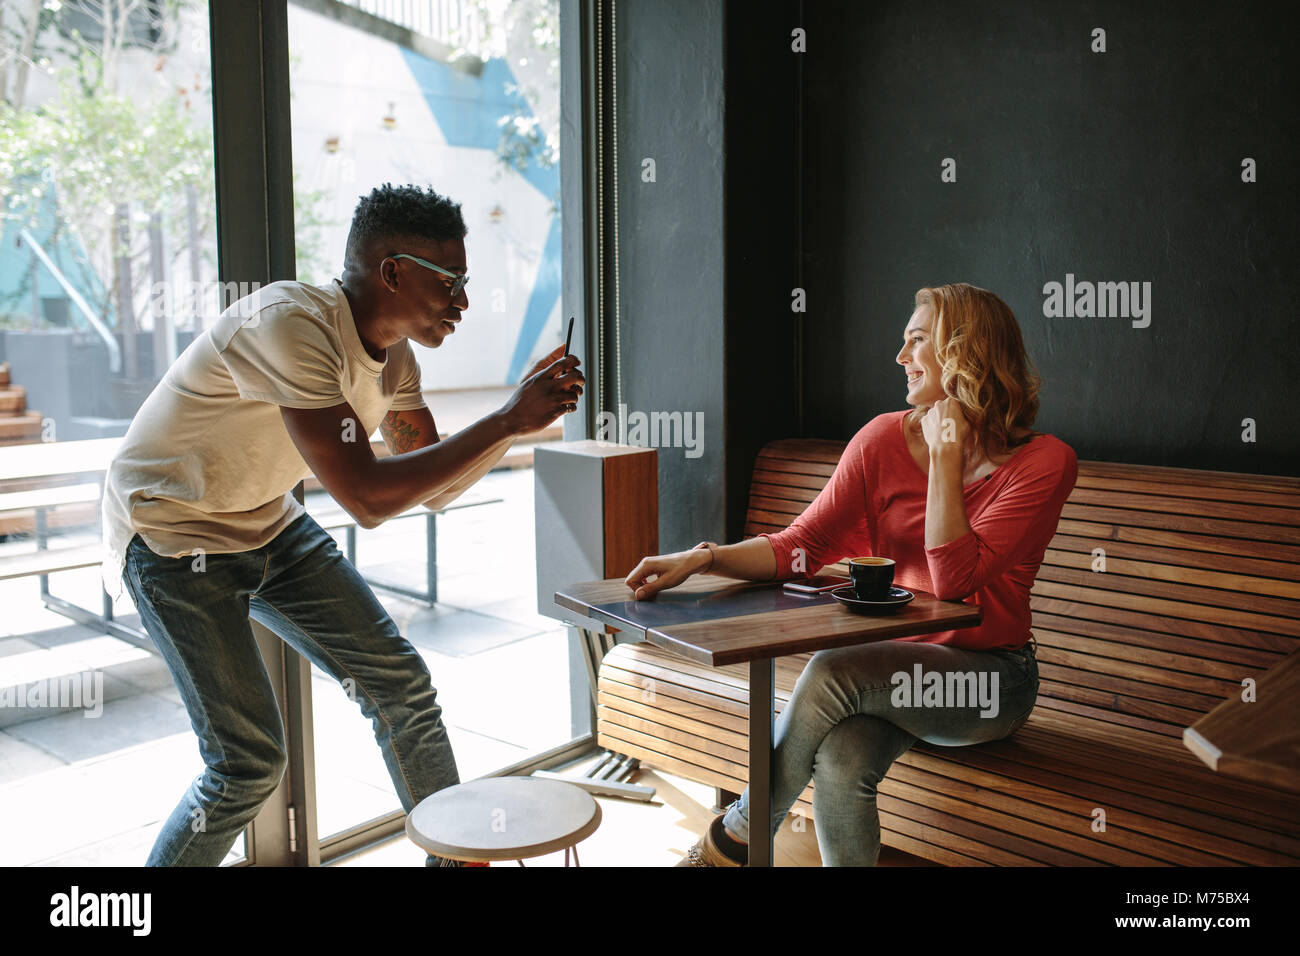 Woman sitting at a coffee shop posing for a photograph. Man taking photo of a woman using mobile phone at a coffee - Stock Image